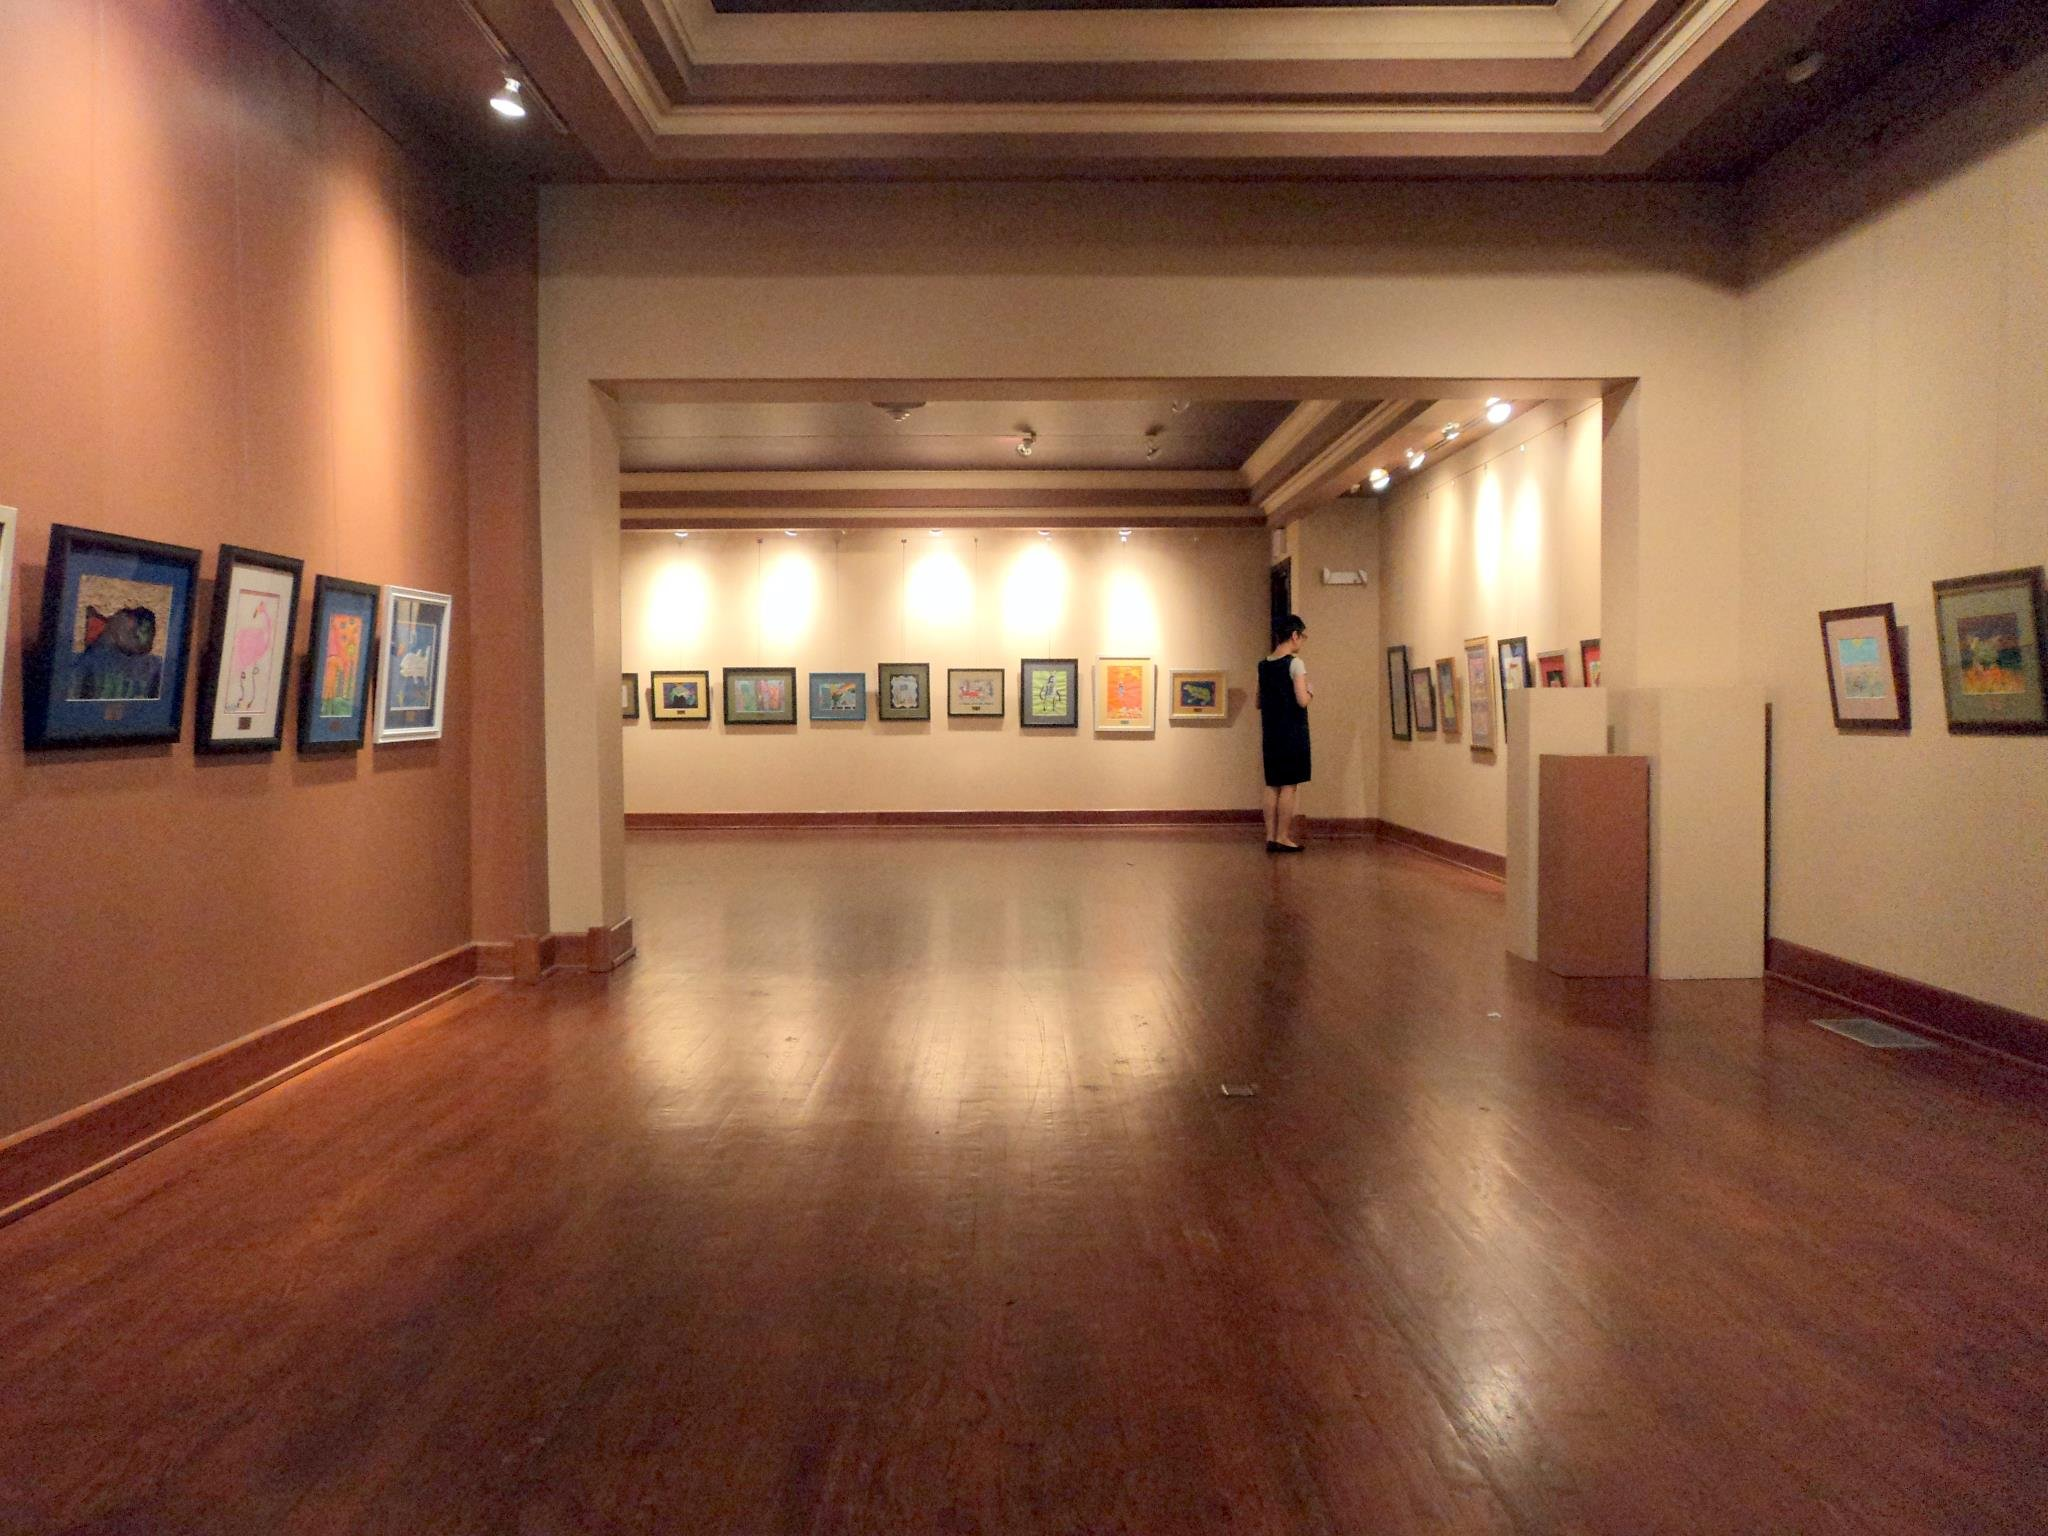 The Empire Arts Center gallery